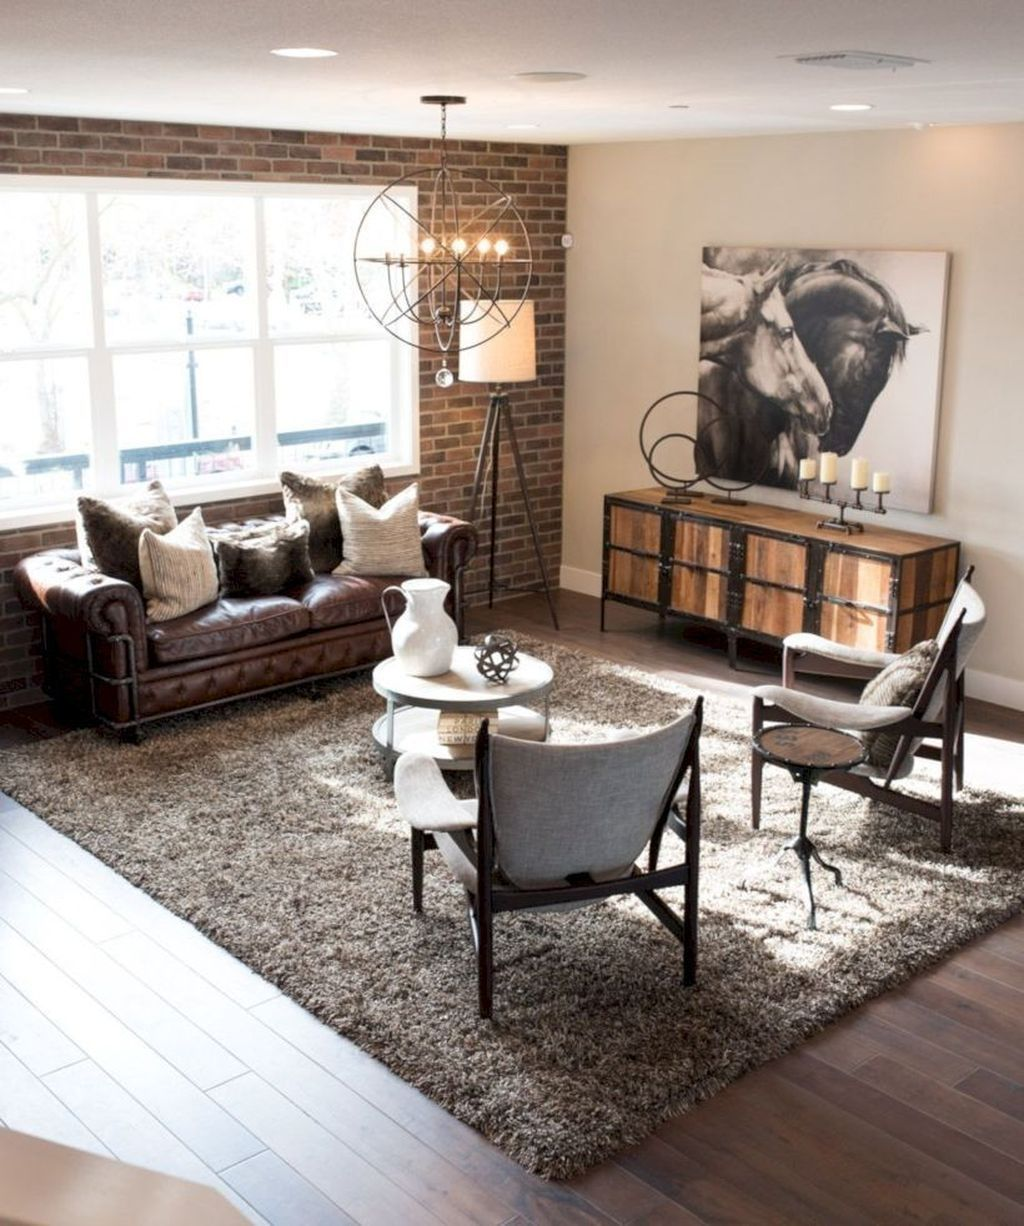 48 Inspiring Living Room Ideas For Small Space Homyhomee Rustic Industrial Living Room Industrial Living Room Design Industrial Decor Living Room